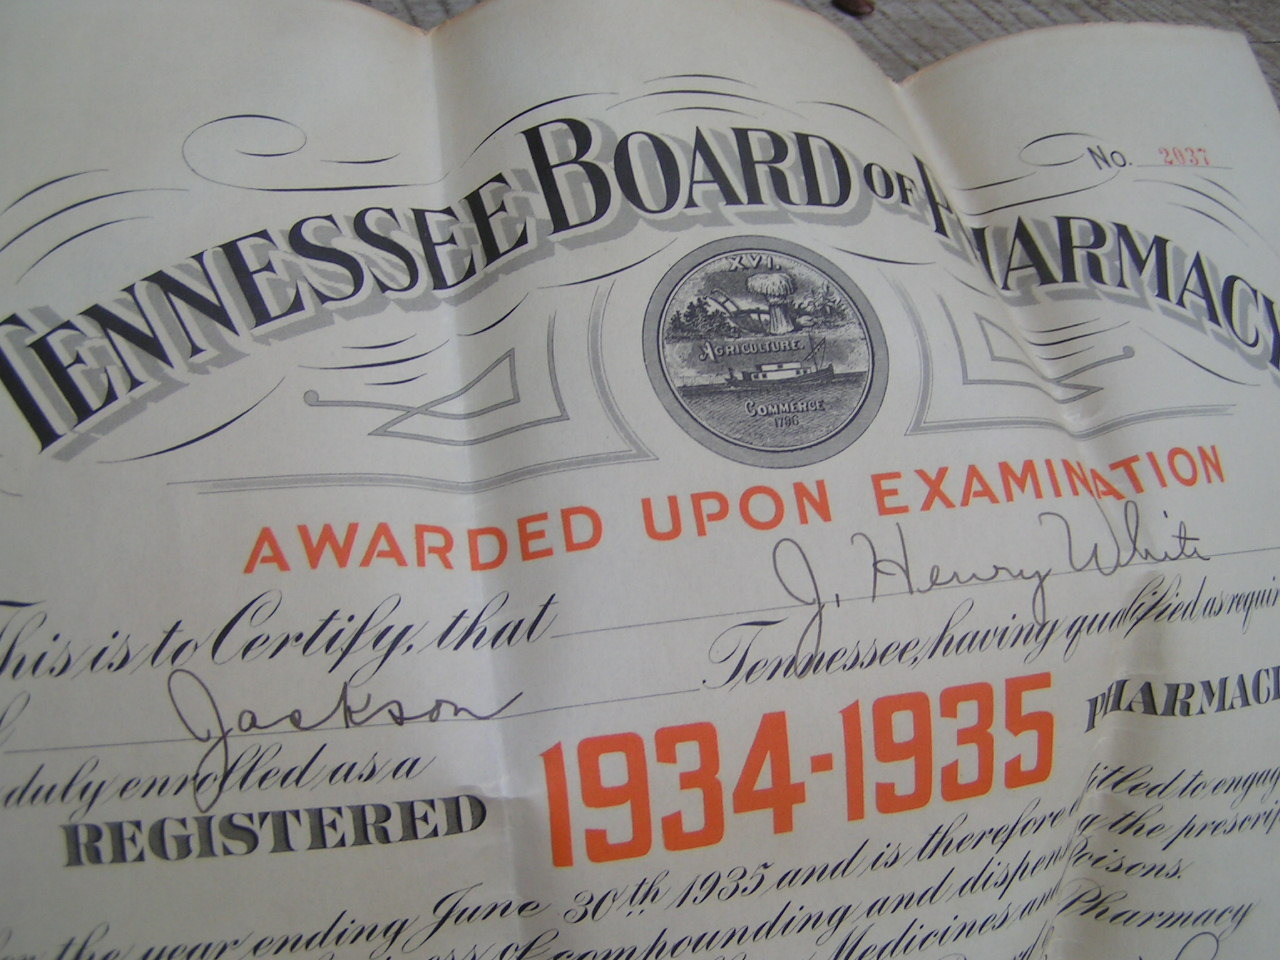 OLD 1934 35 Tennessee Pharmacist Board Certificate Diploma Seal Ephemera bz